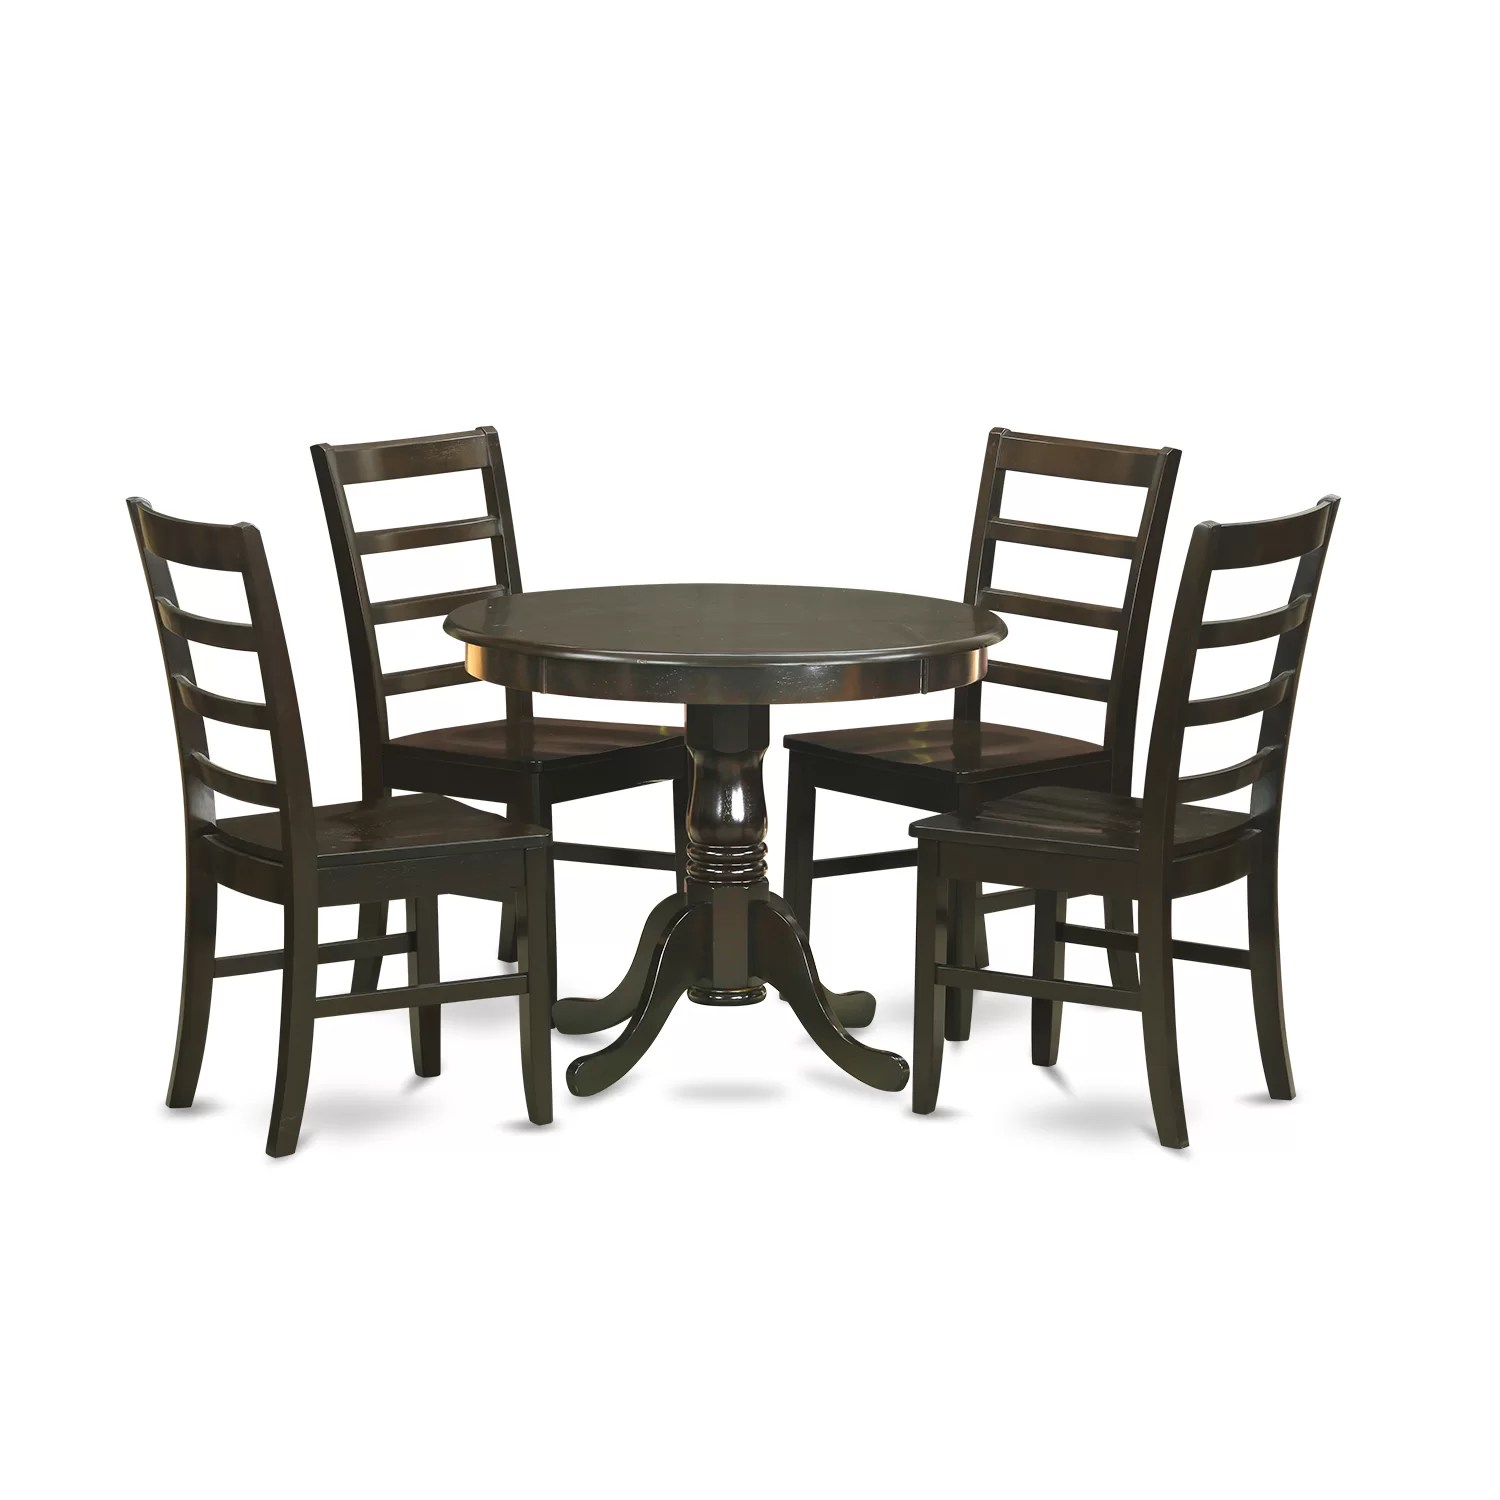 Drop Leaf Table With Chairs 5 Piece Dining Set Wayfair